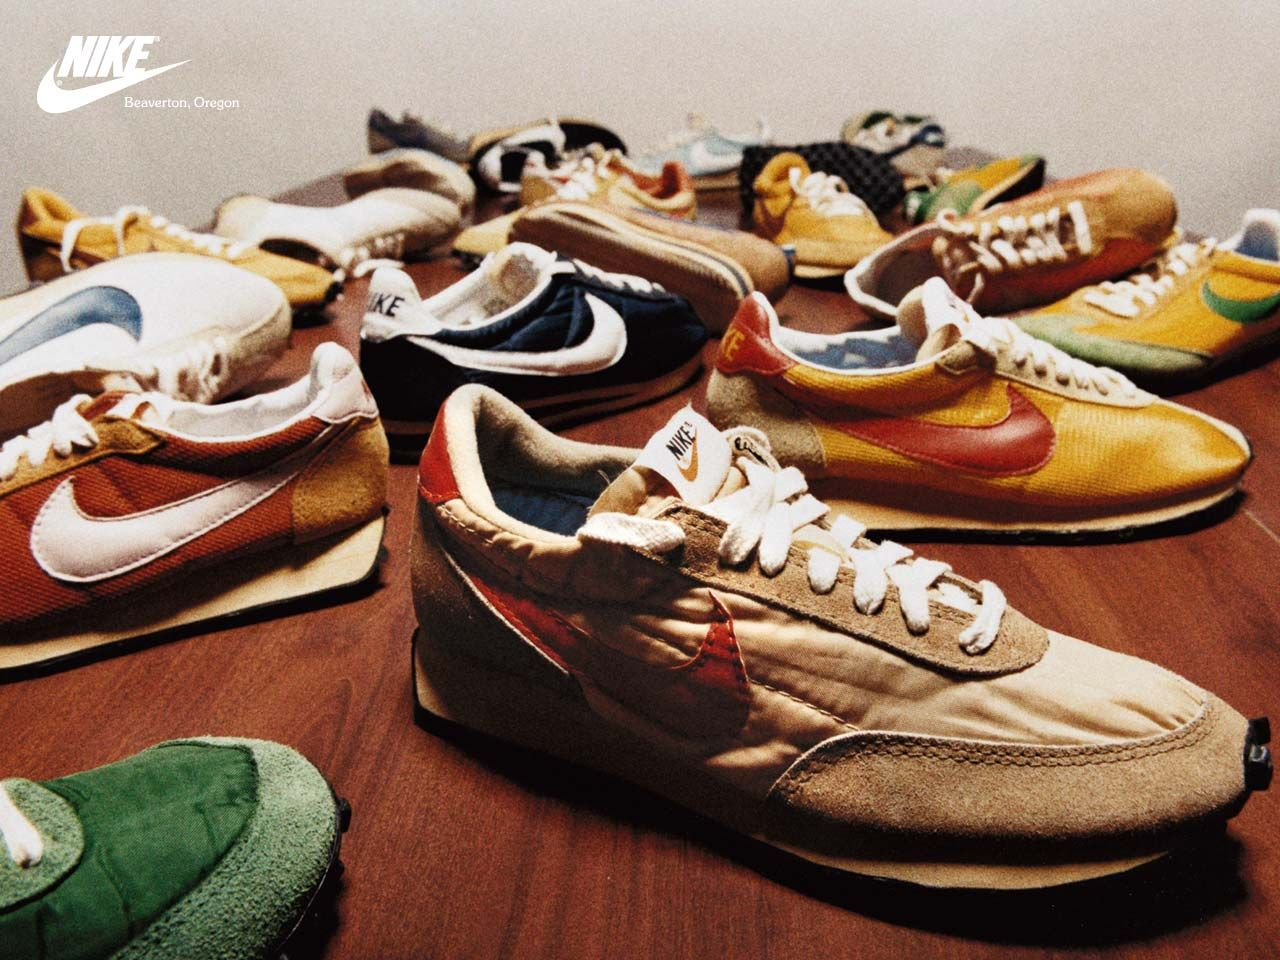 dating vintage nike shoes Converse was founded in 1908 as a rubber shoe company specializing in winter boots in 1915 the company started manufacturing athletic tennis shoes and in.